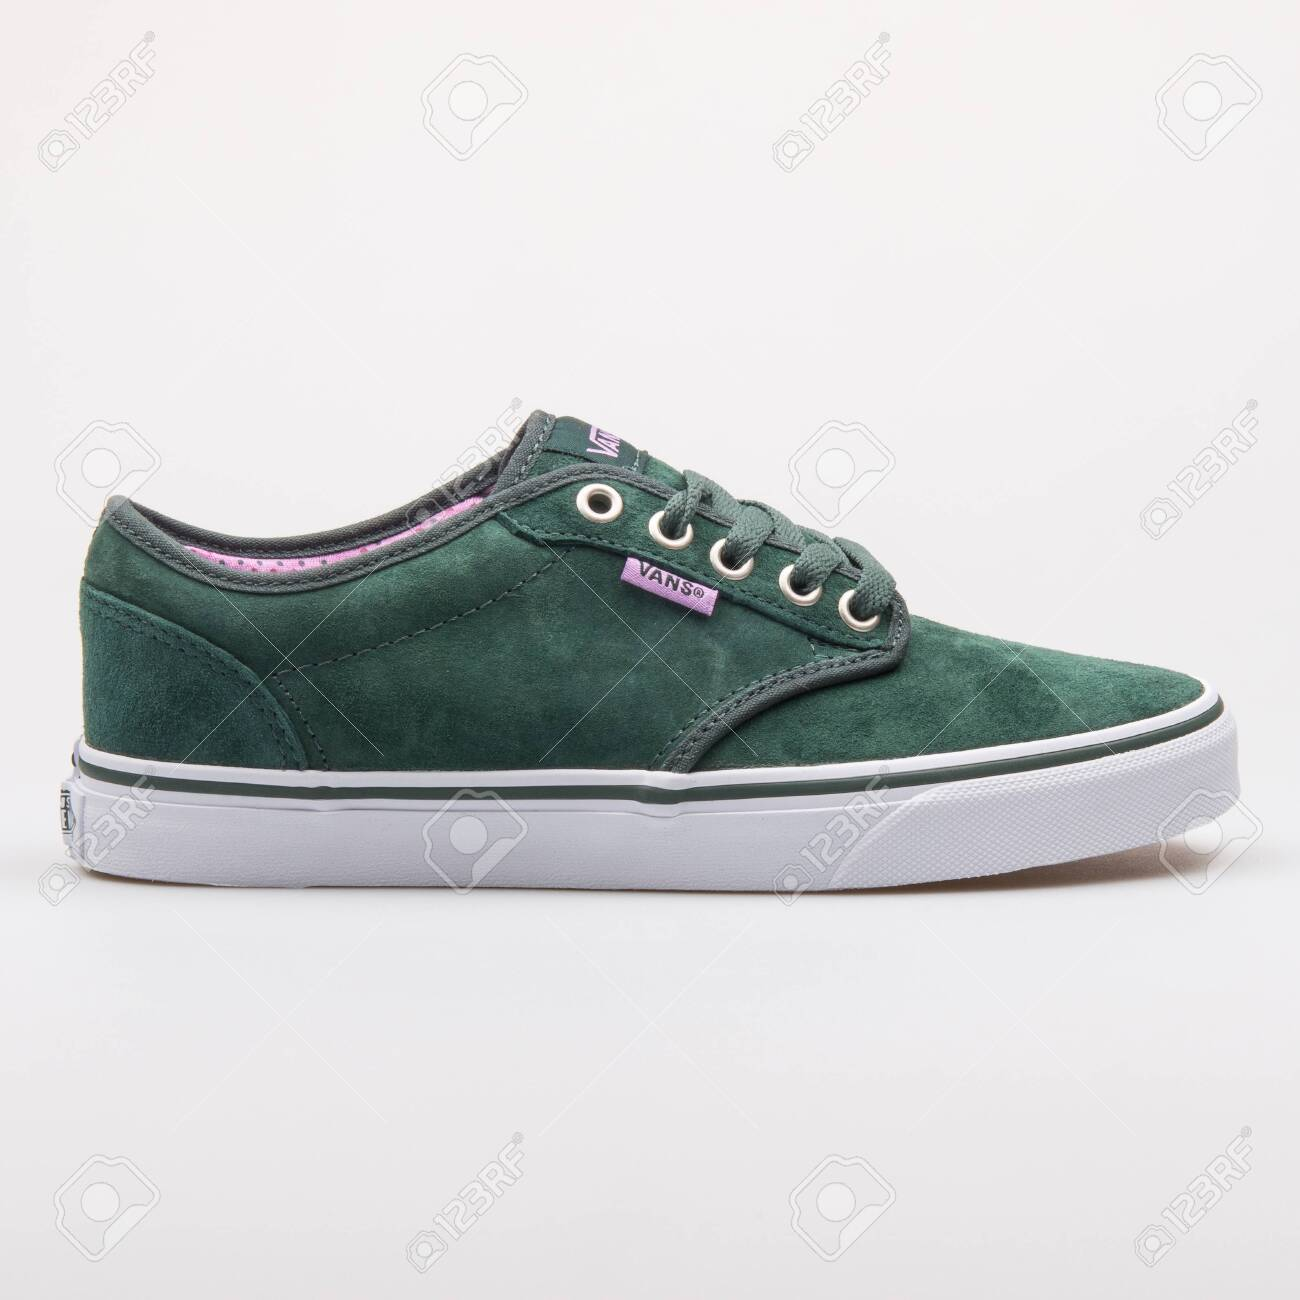 Vans Atwood Green Sneaker Isolated